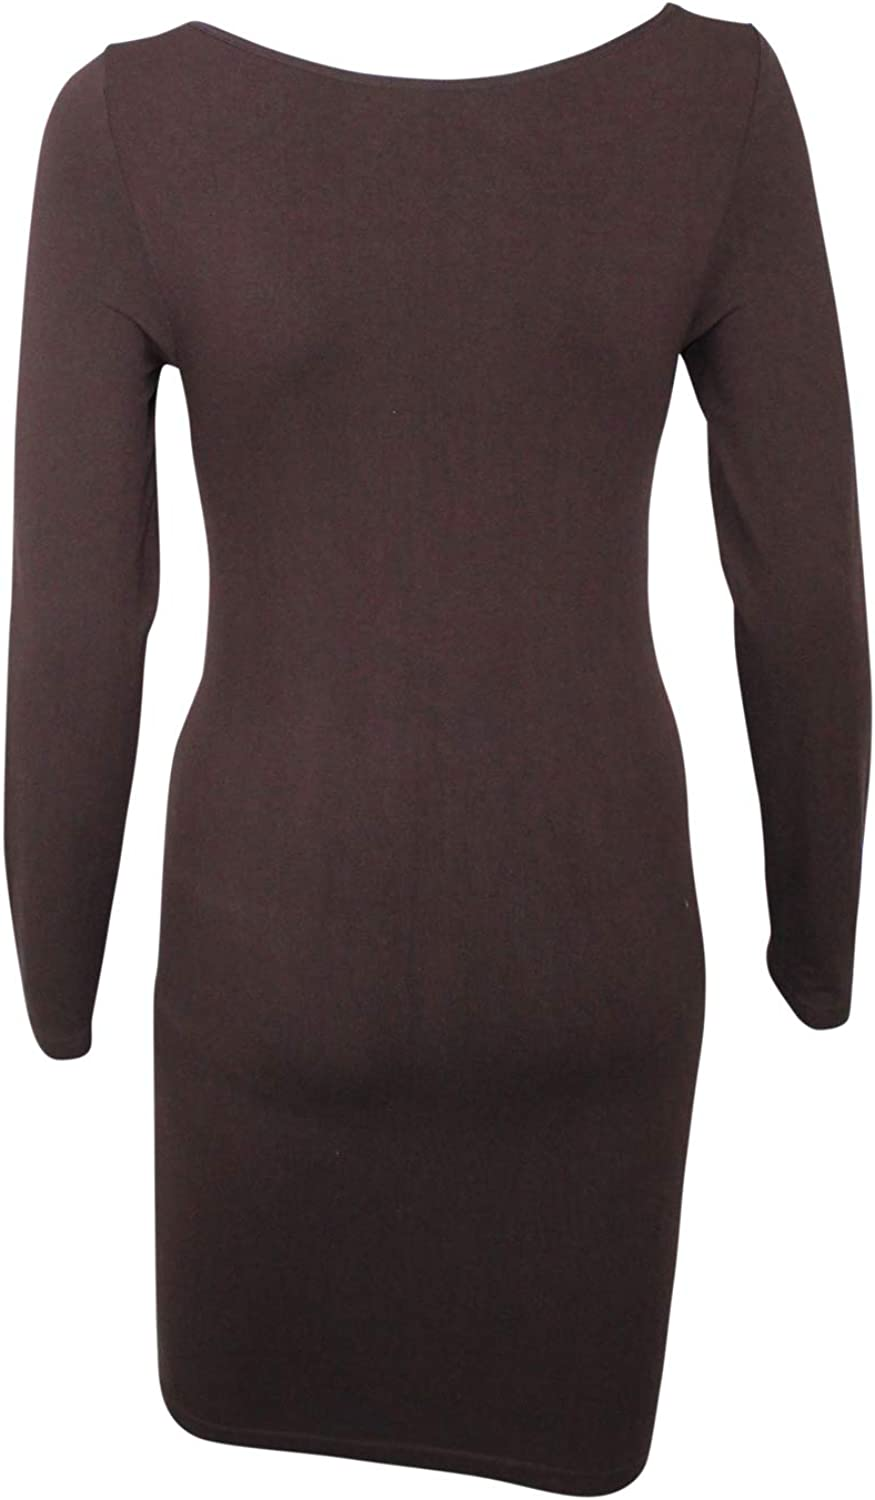 M Rena Womens Long Sleeve Tunic Dress-One Size Fits Most